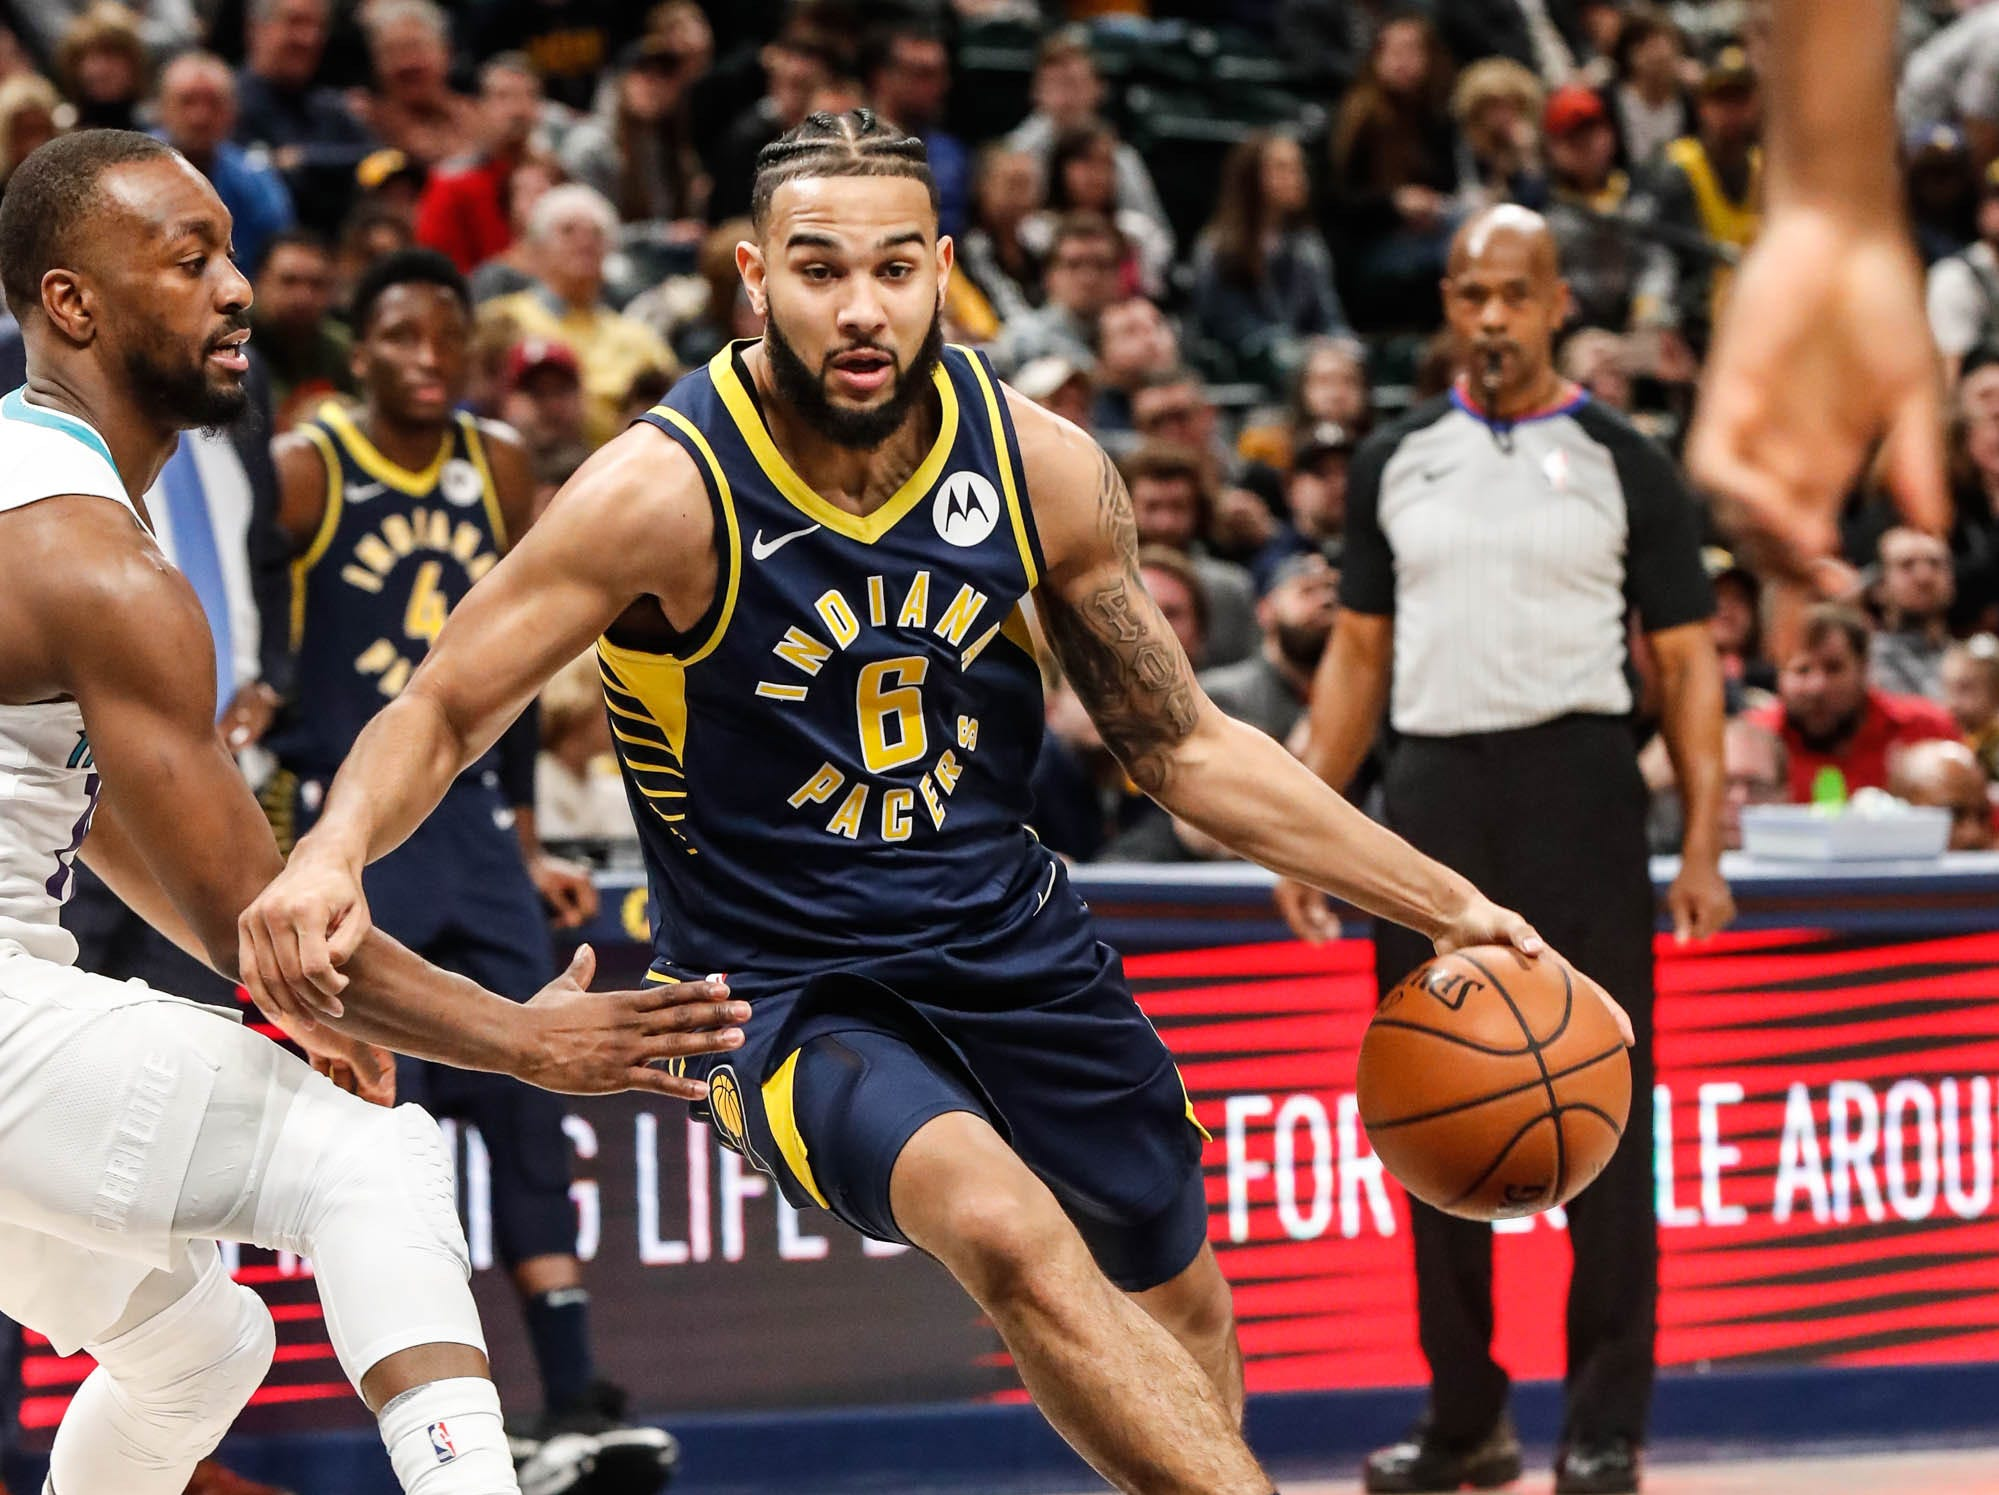 Indiana Pacers guard Cory Joseph (6) drives to the hoop during a game between the Pacers and Hornets at Bankers Life Fieldhouse on Sunday, Jan. 20, 2019.